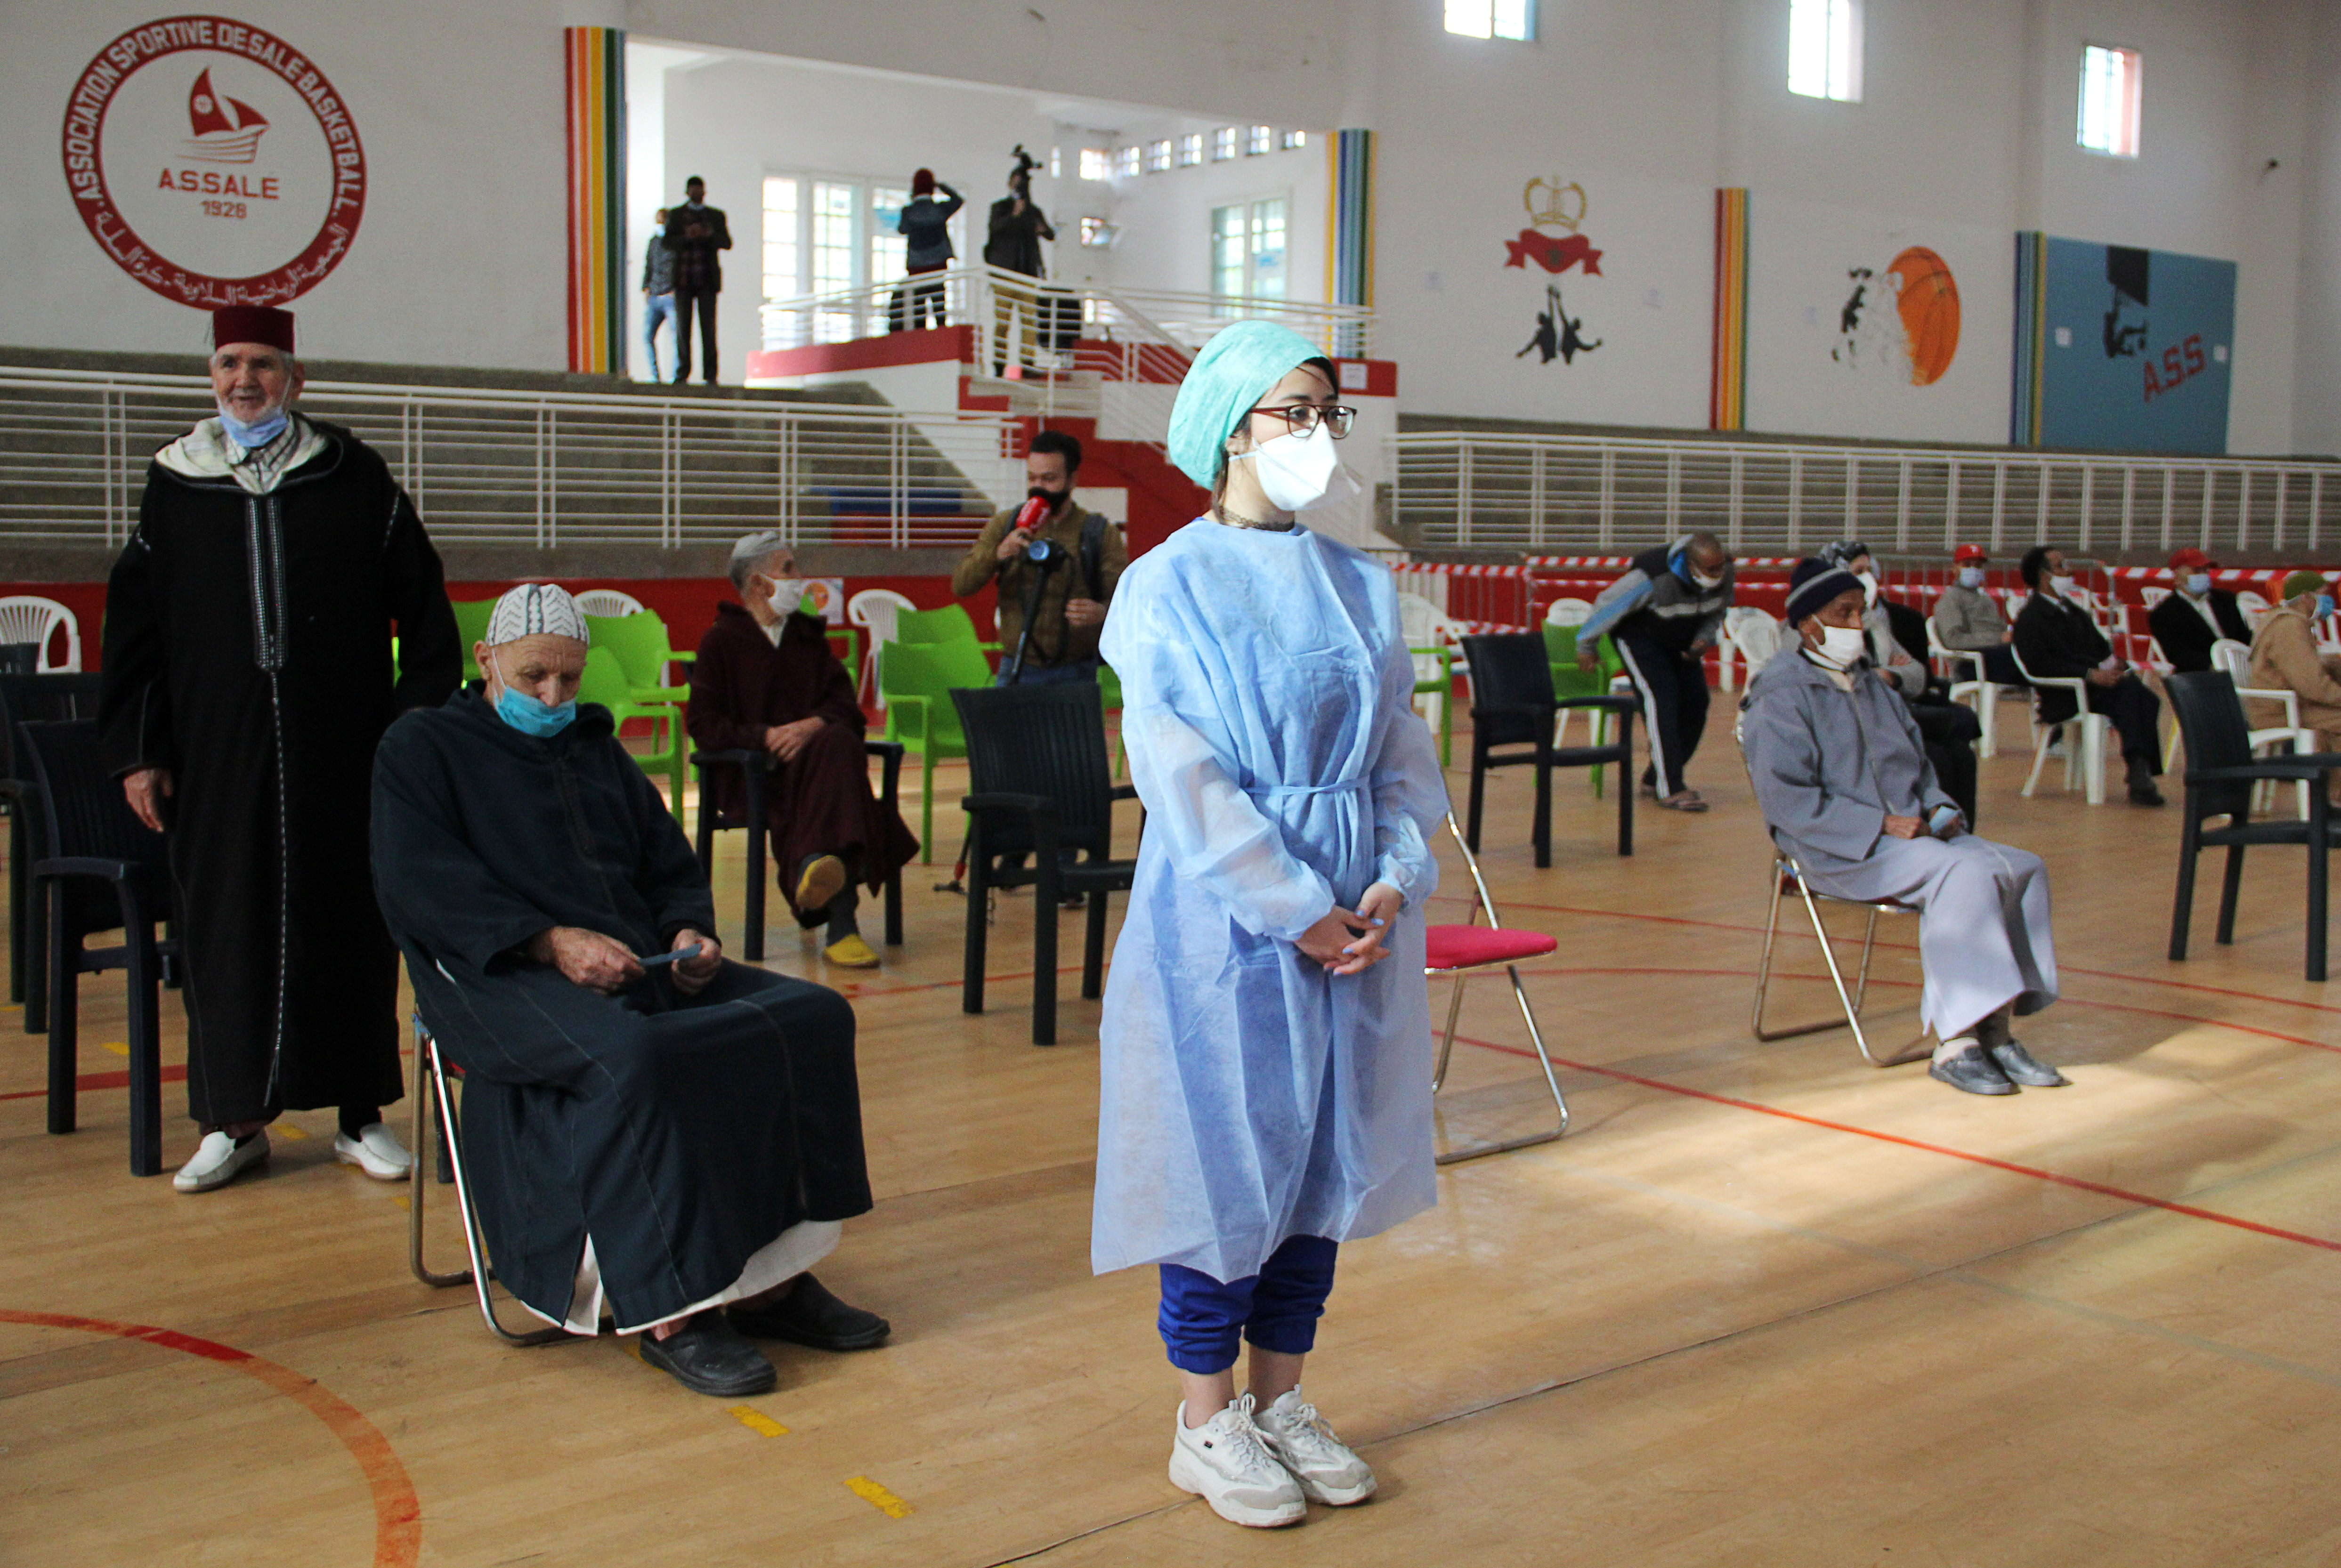 People wait to receive the COVID-19 vaccine, during a national coronavirus vaccination campaign, in Sale, Morocco January 29, 2021.  REUTERS/Shereen Talaat